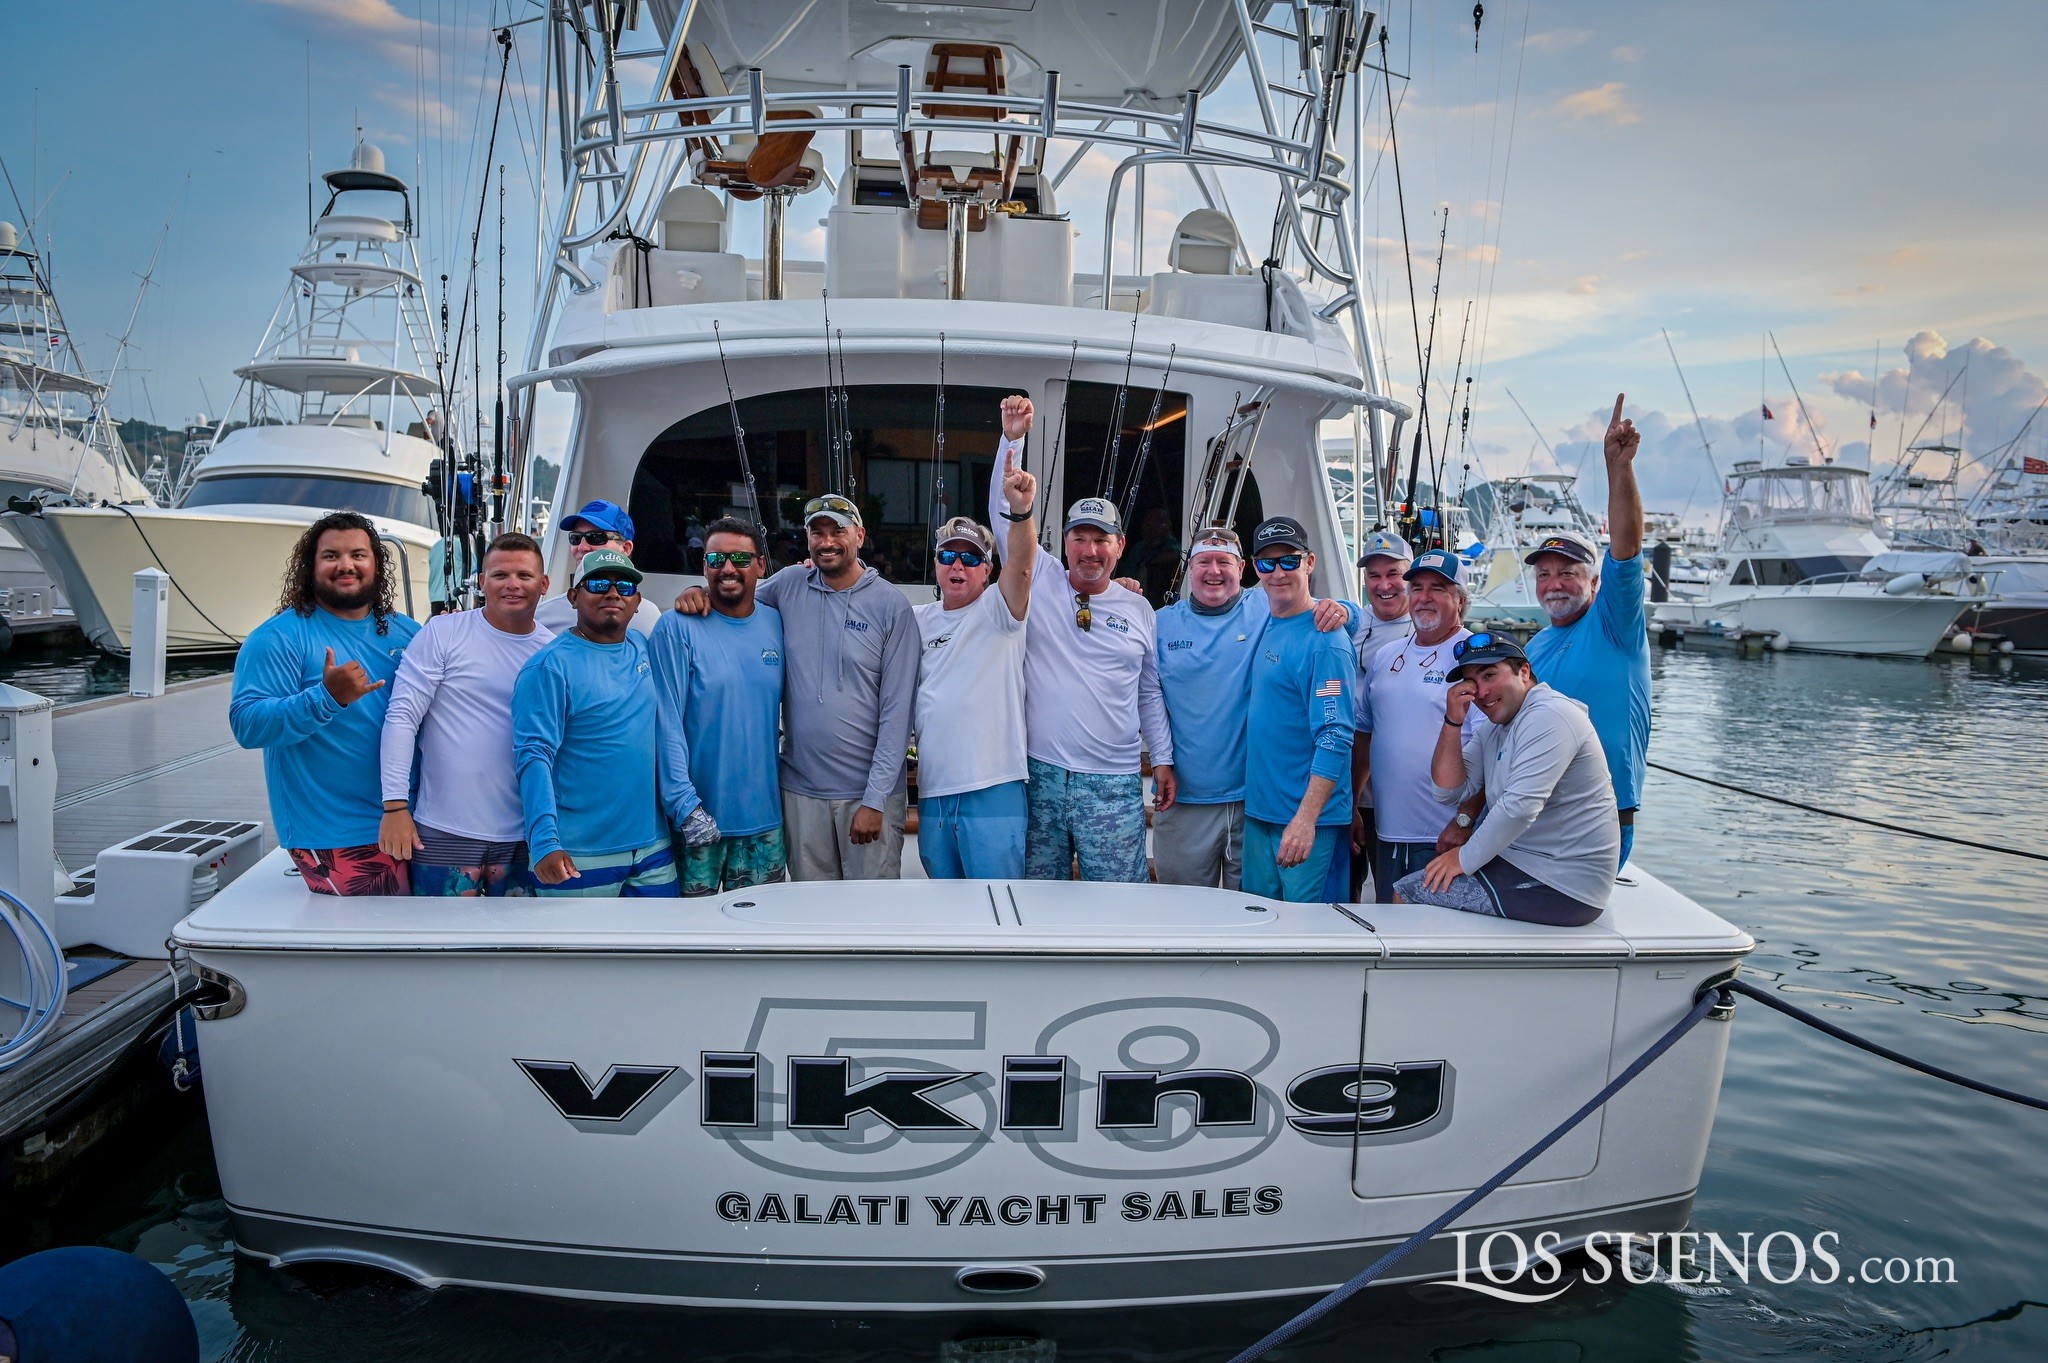 Los suenos-Signature Triple Crown-2021-Leg3-ronald-RRV_3716-WEB